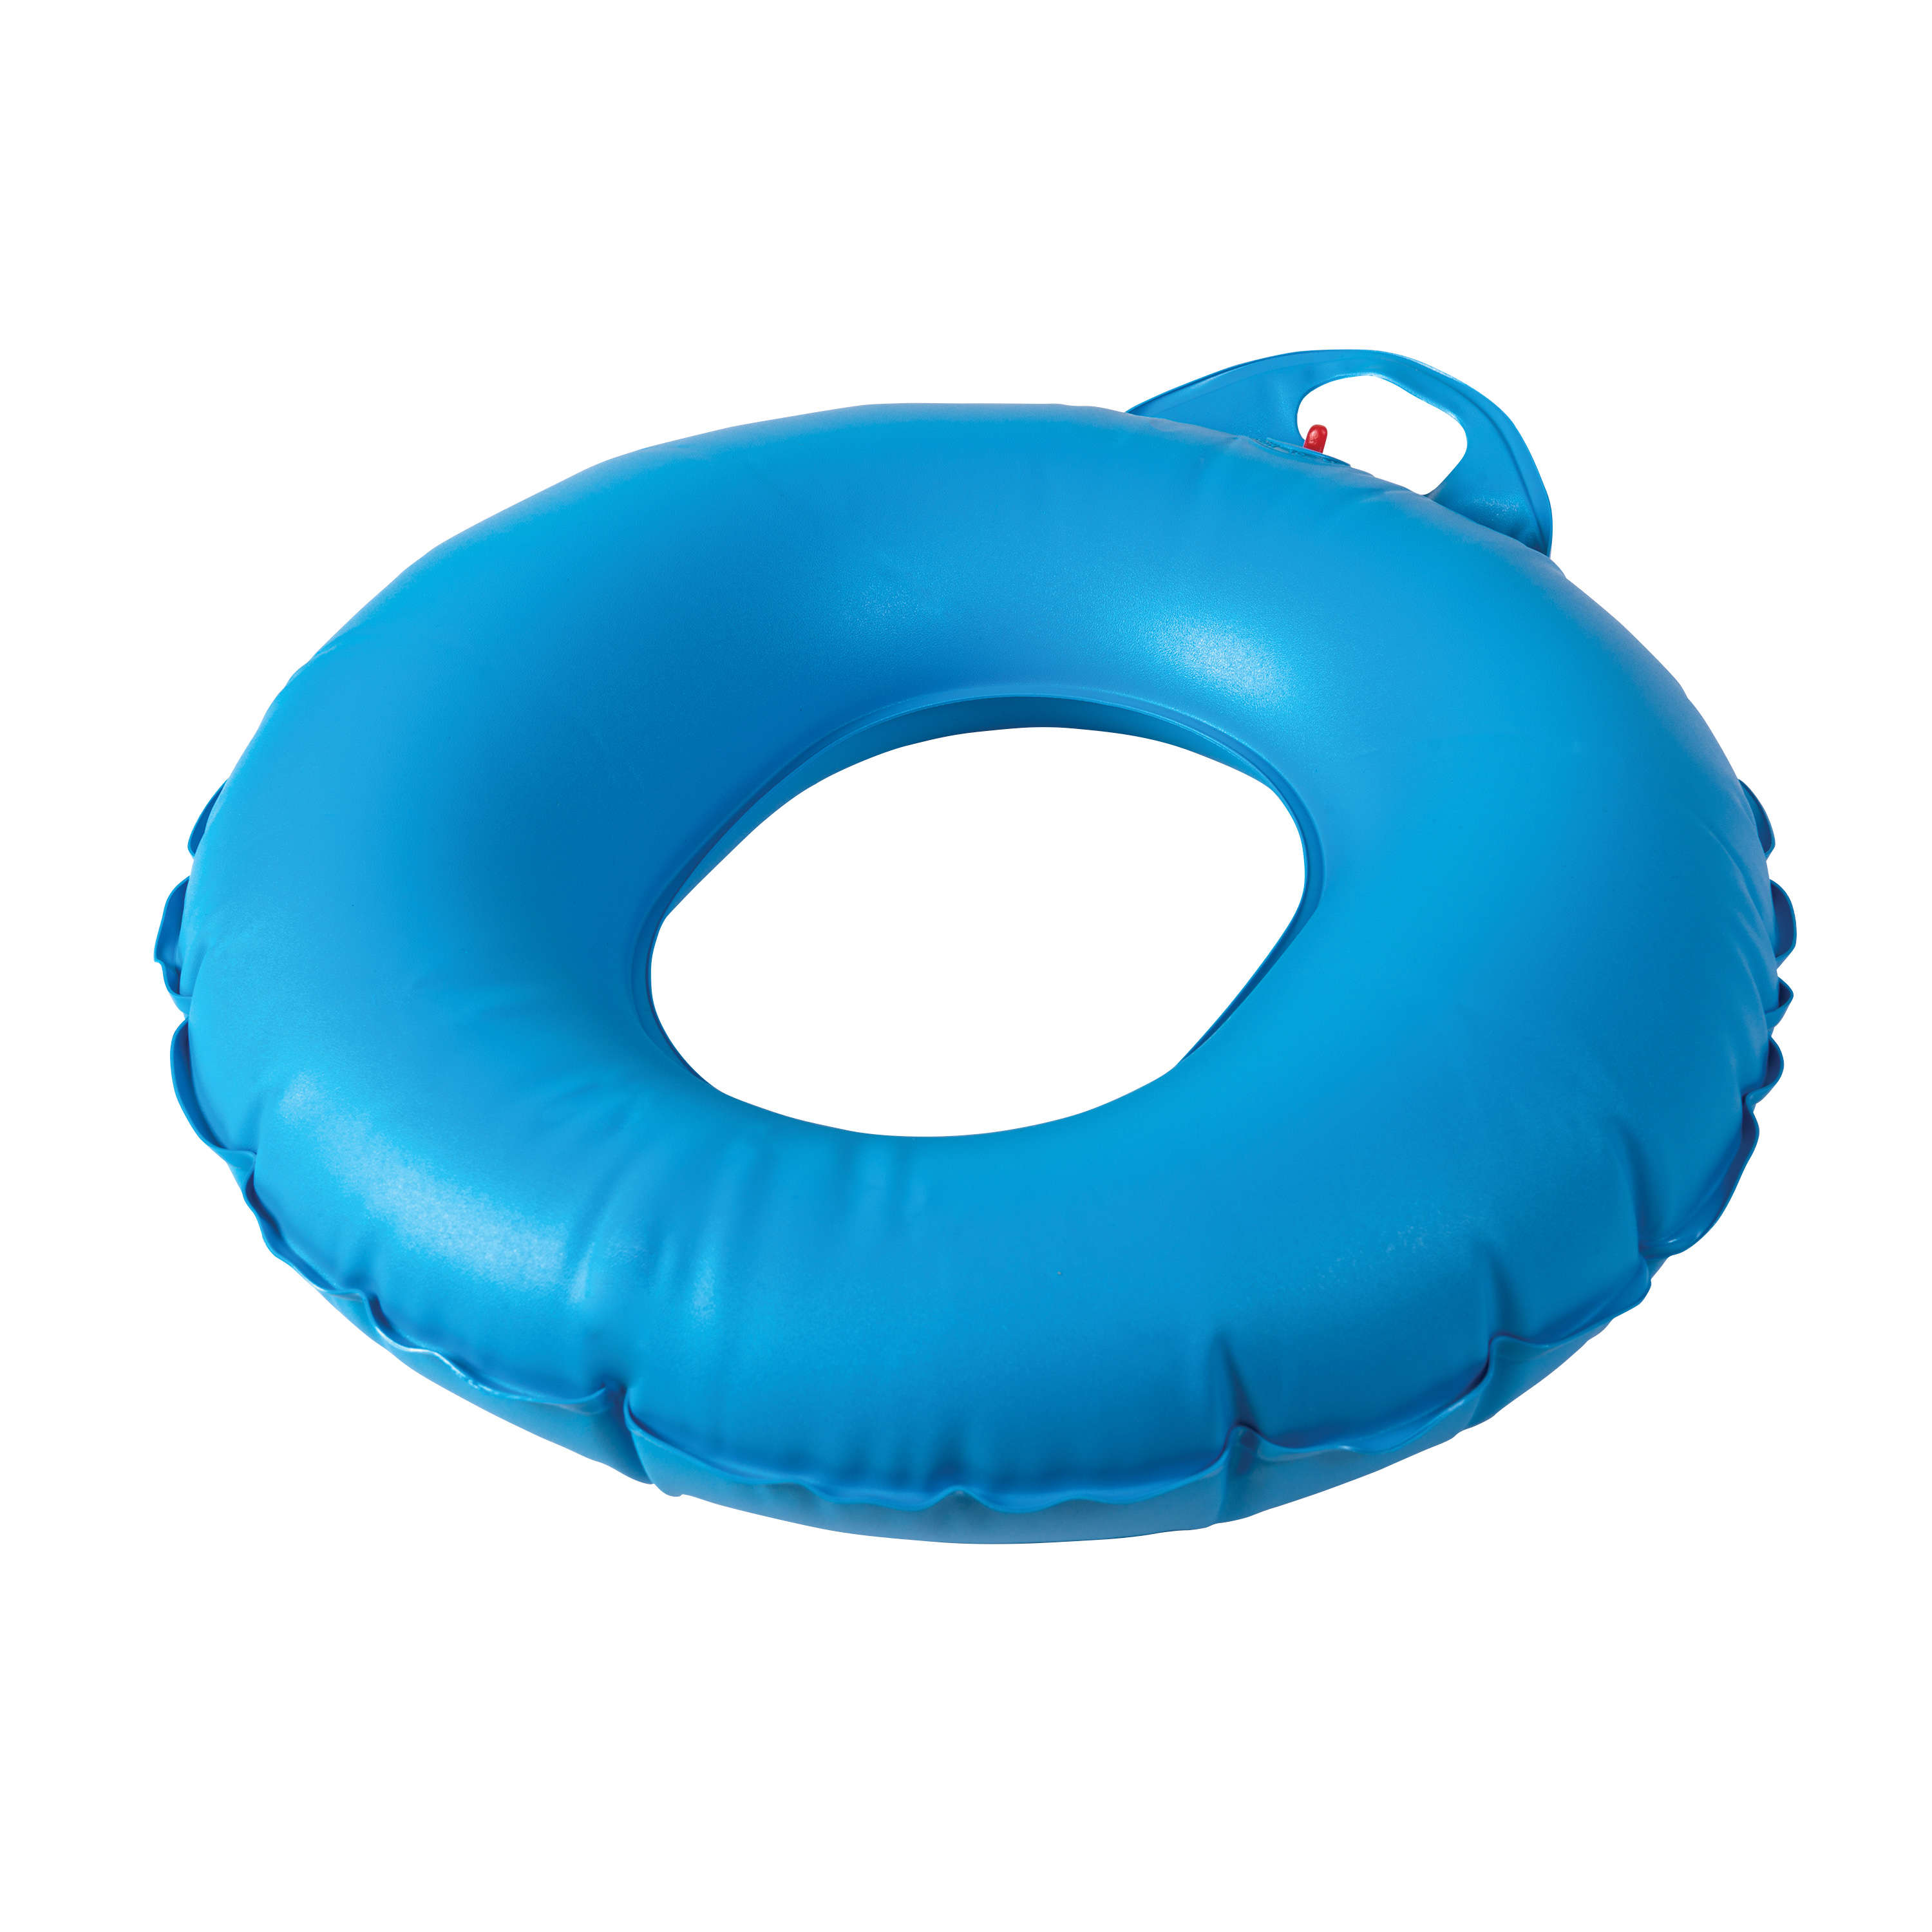 dmi donut inflatable seat cushion for tailbone and bed sores donut pillow for sitting 16 inches blue walmart com walmart com